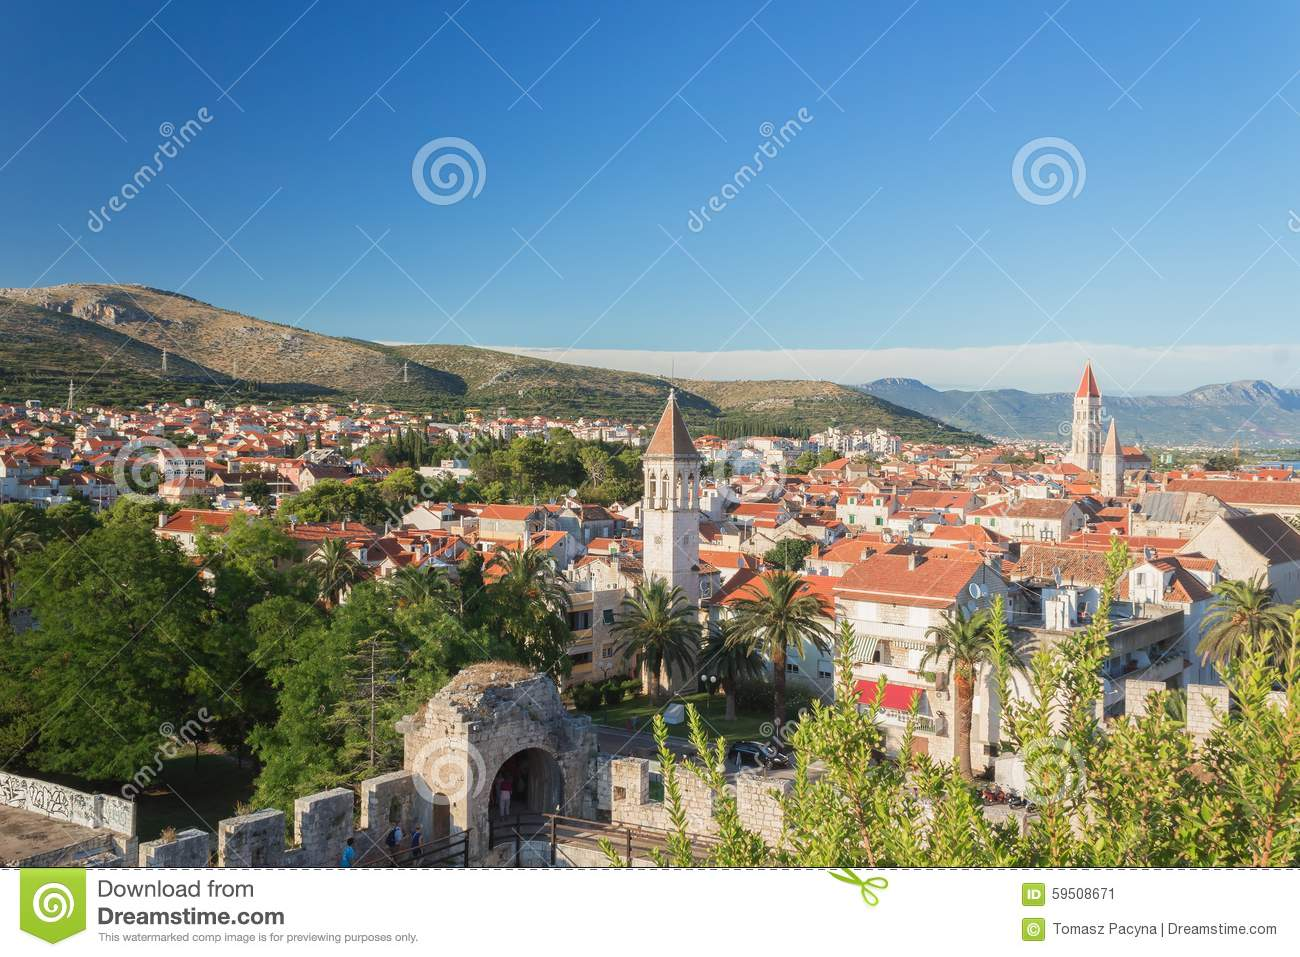 Trogir - historic town in Croatia (Dalmatia). Aerial view on ancient Trogir. Summer vacation concept